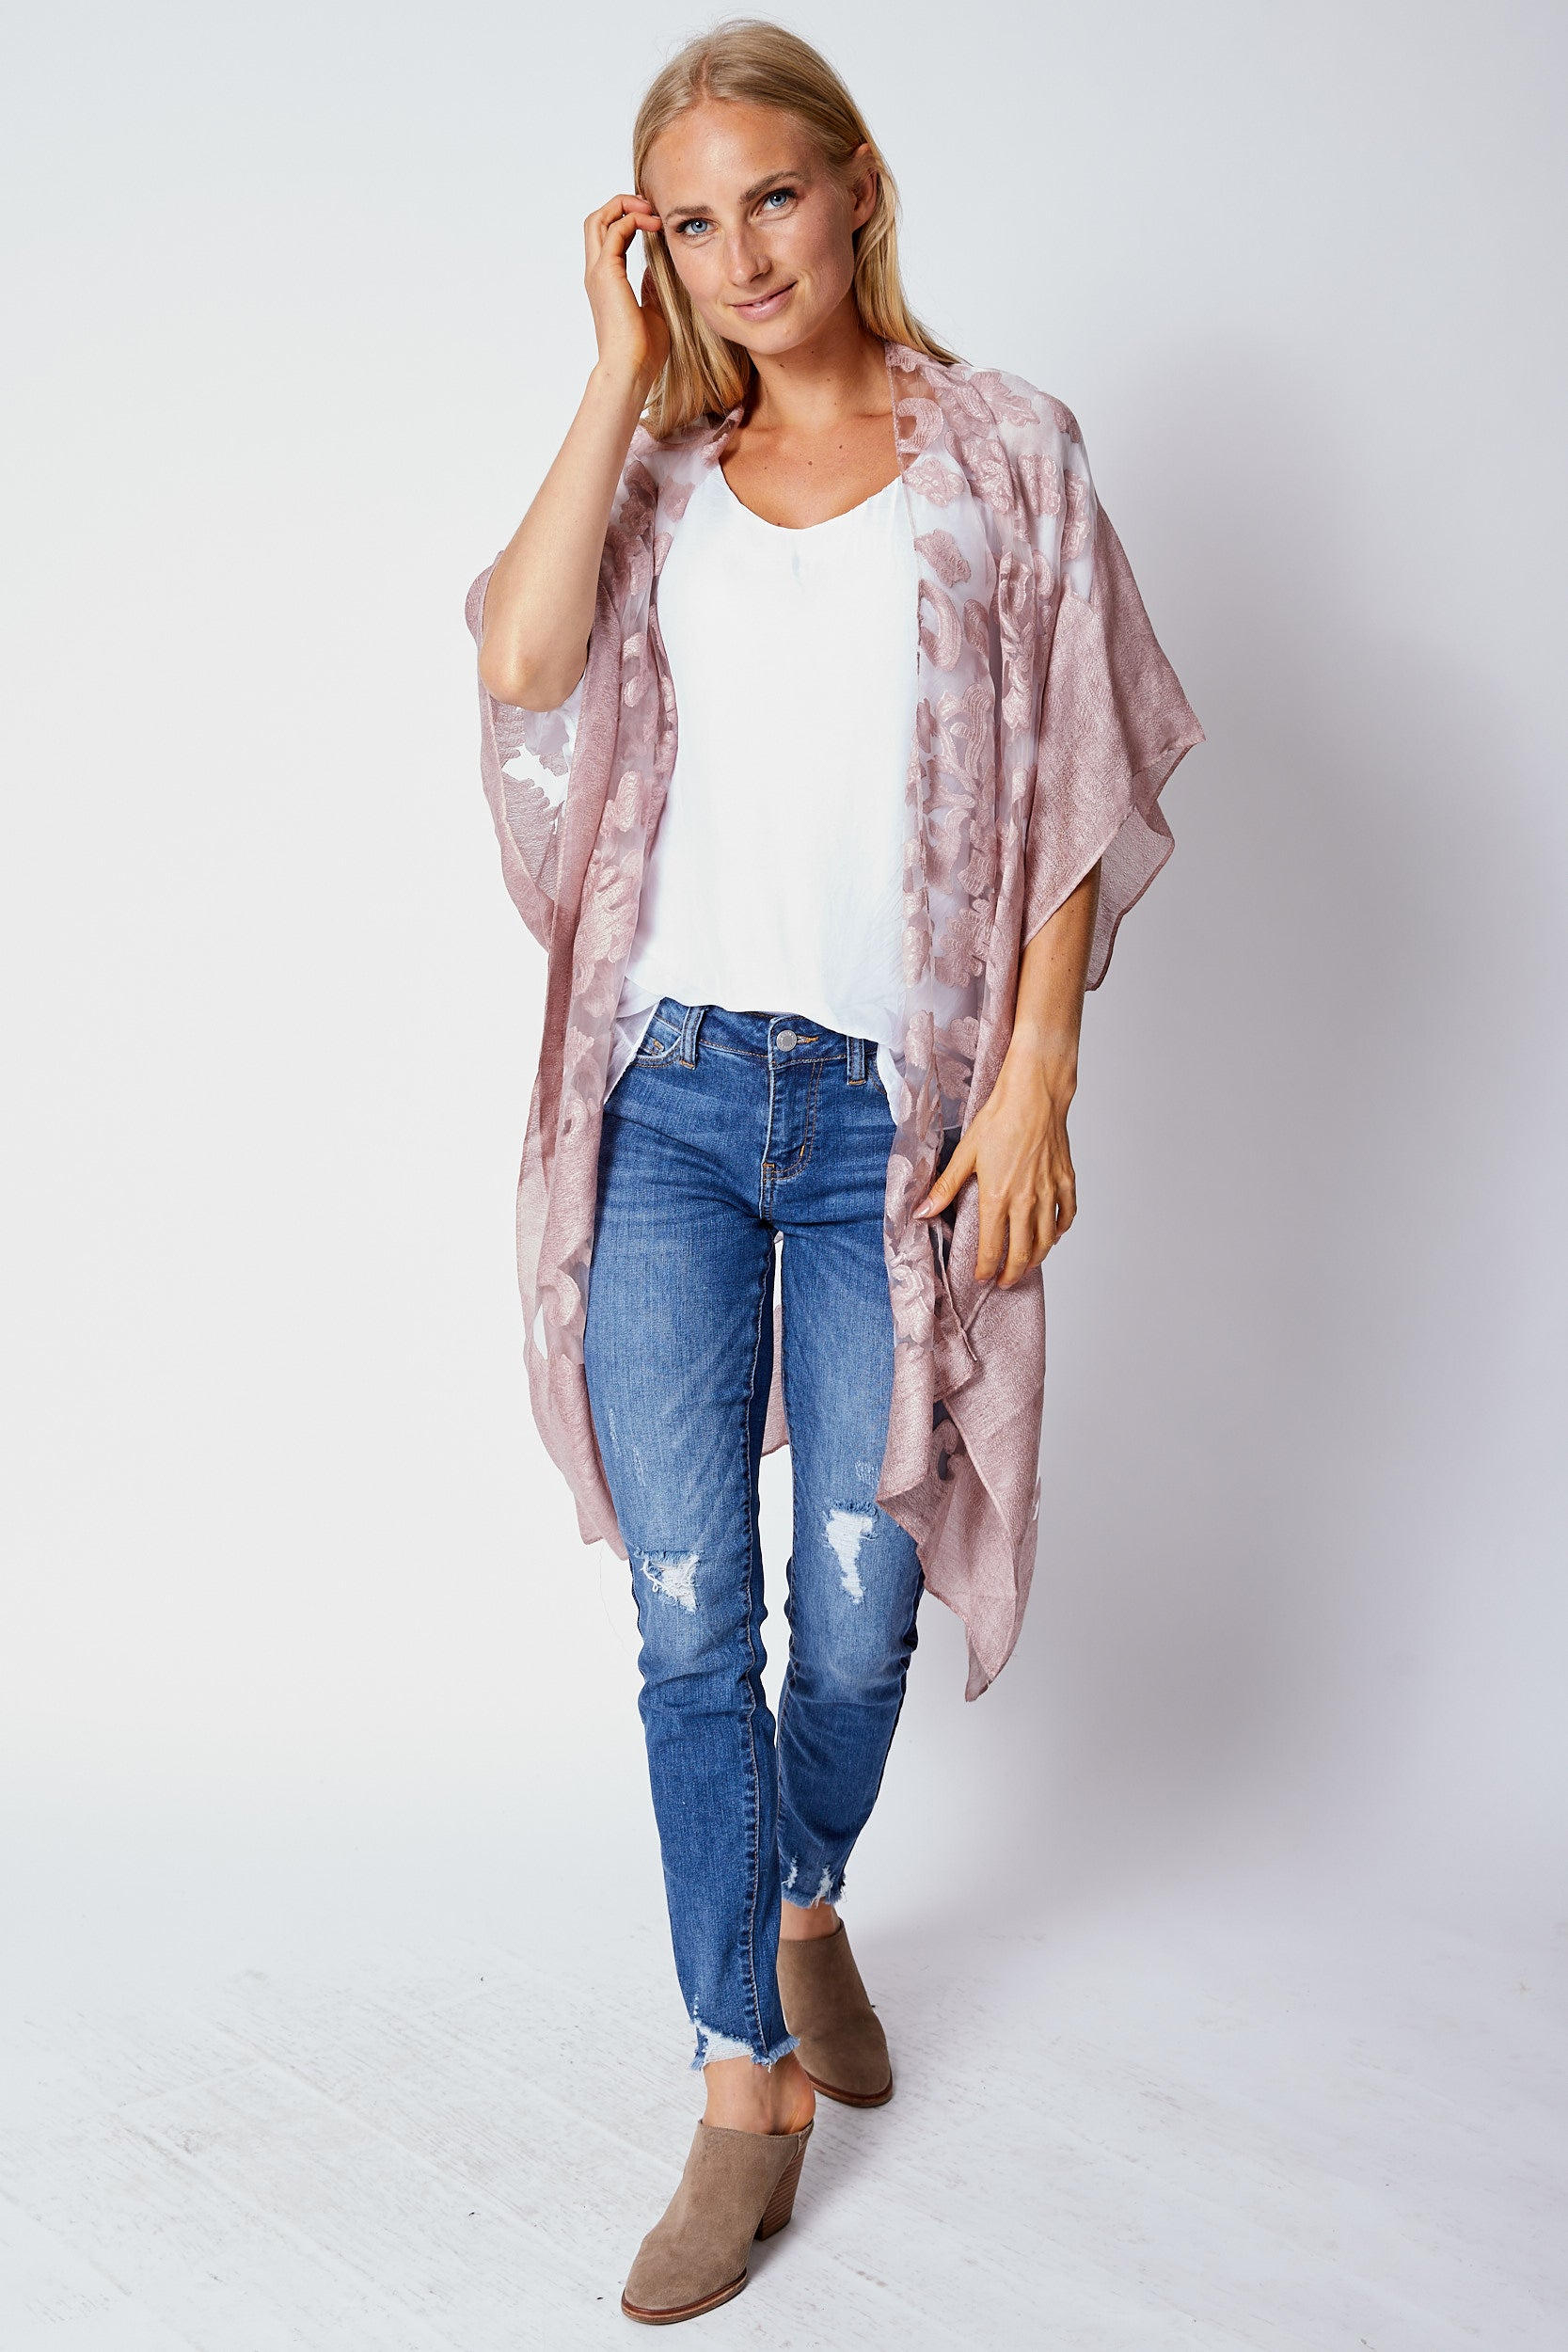 Burn-Out Rose Wrap - Jacqueline B Clothing